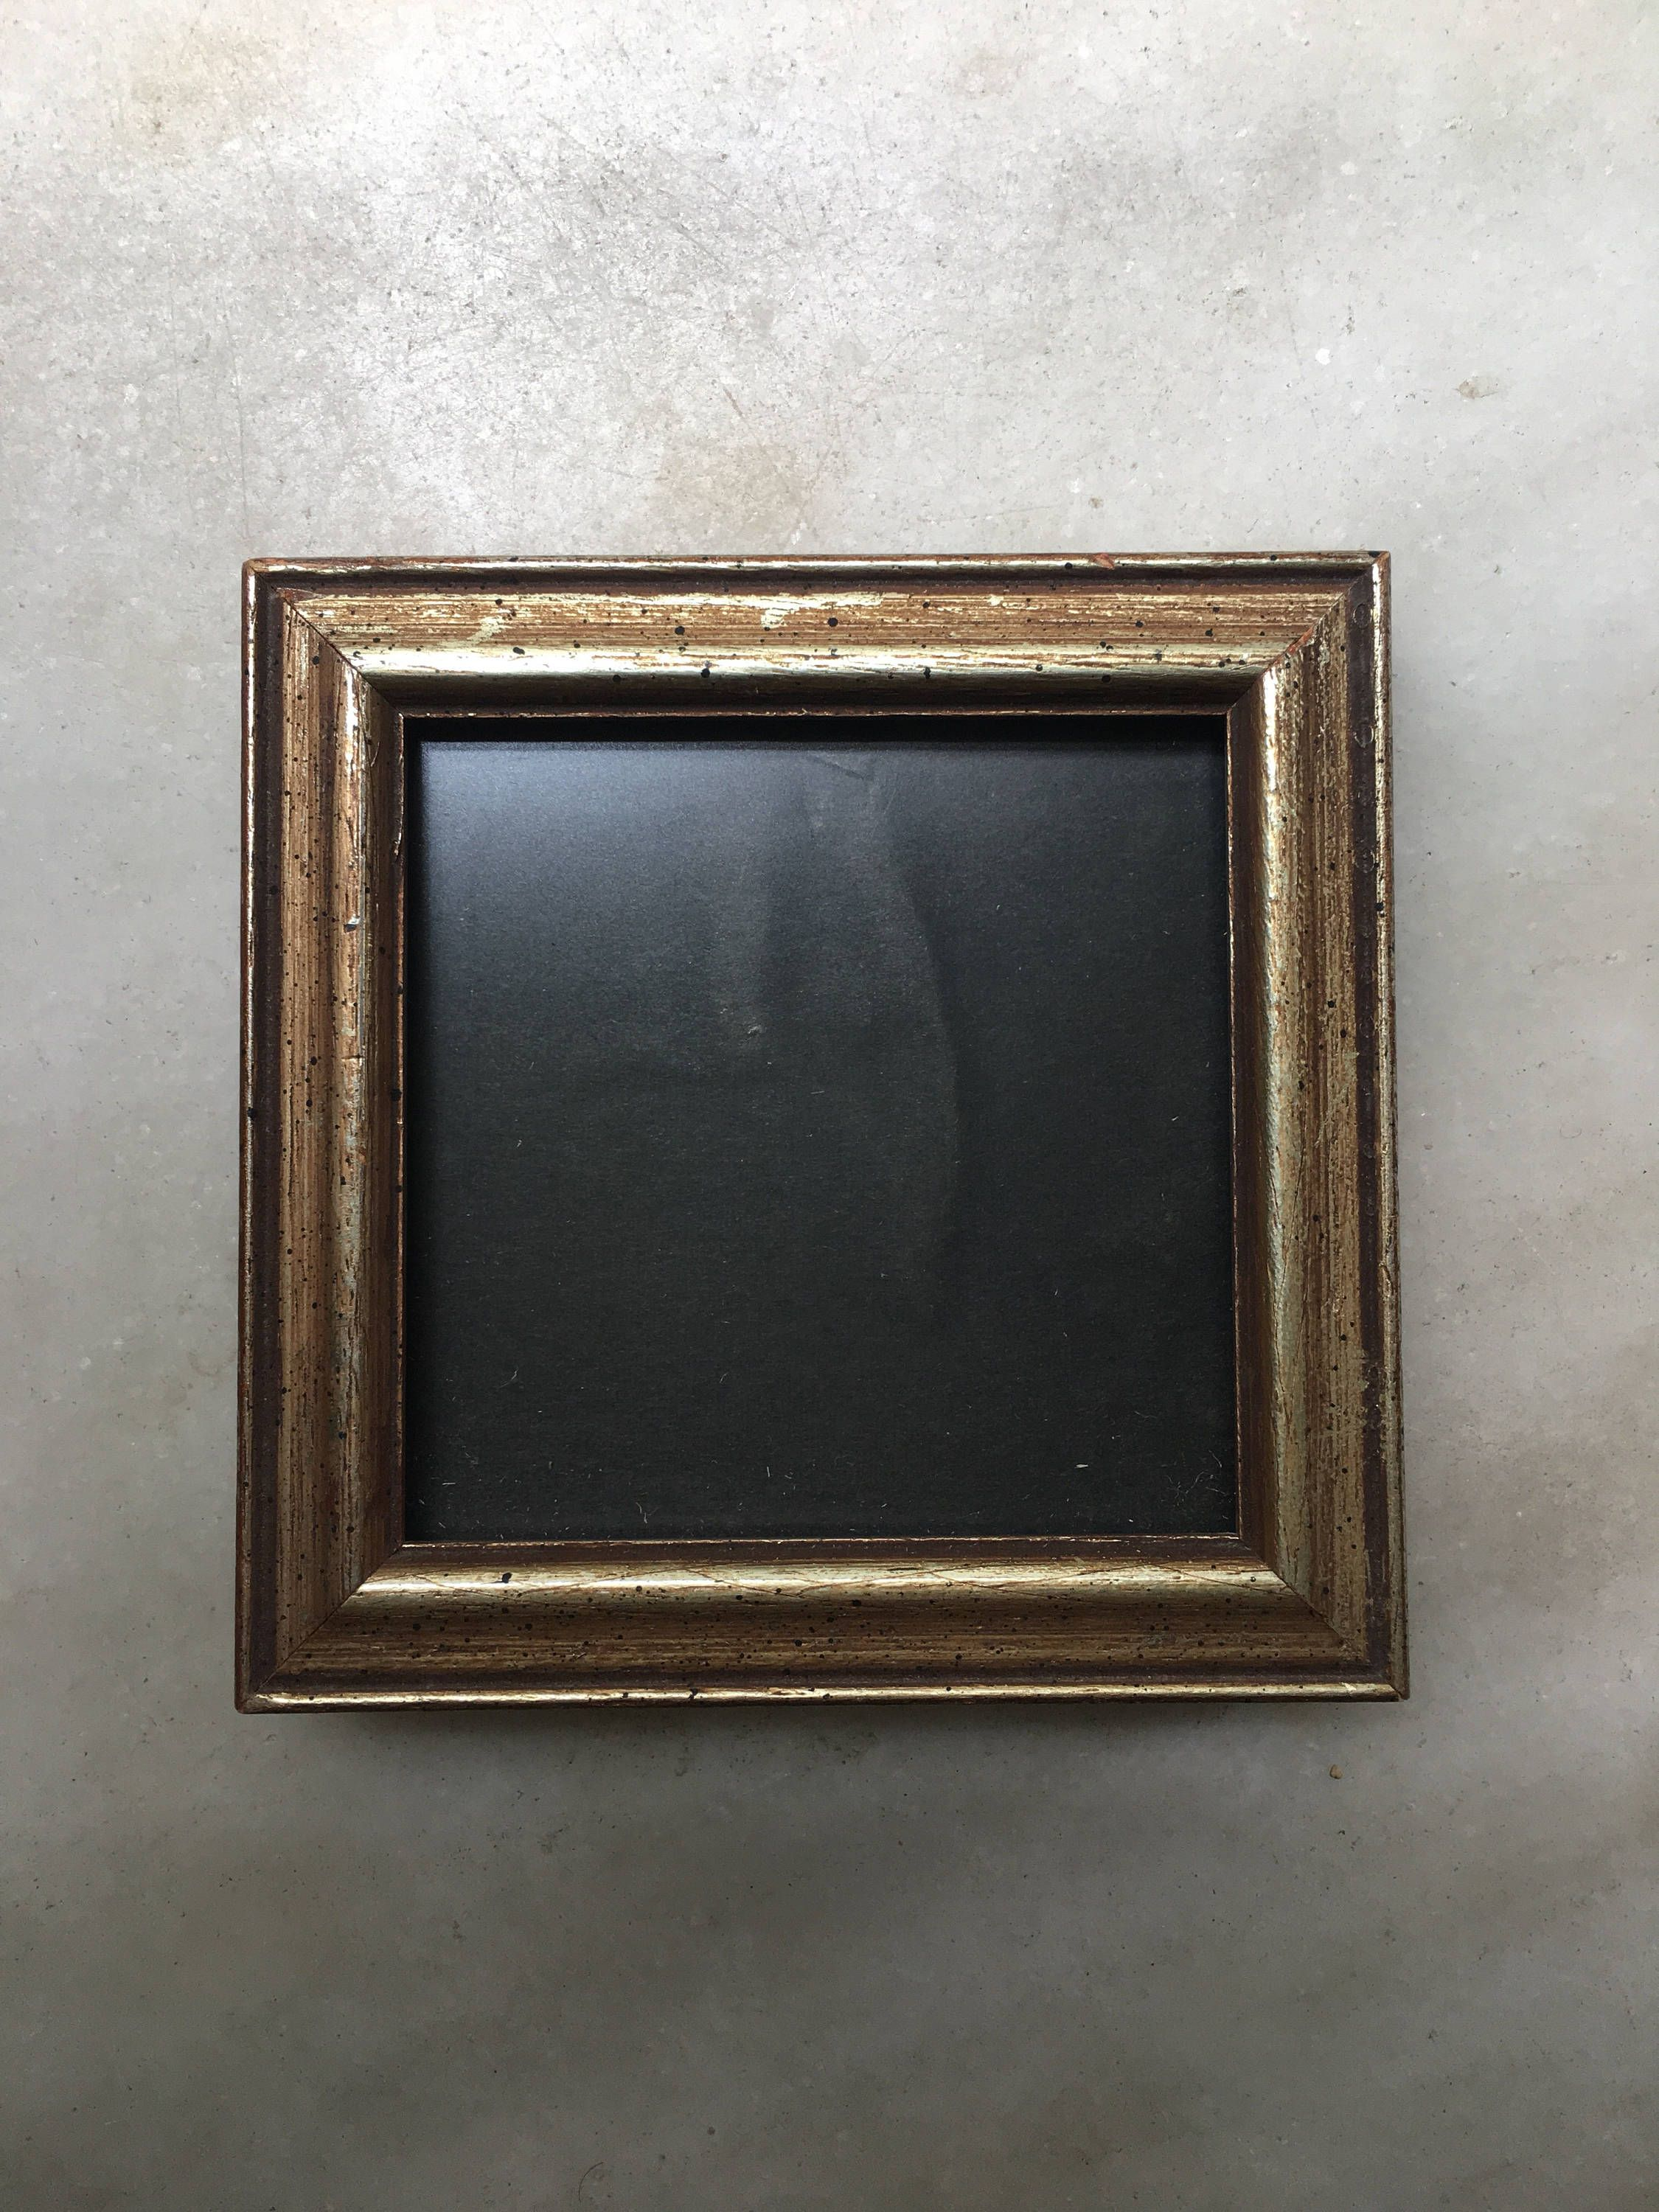 Small Vintage Gilded Wood Photo Frame Stand Up Or Hang Up Frame By Aniadesigns On Etsy Frame Picture Frames Wood Photo Frame